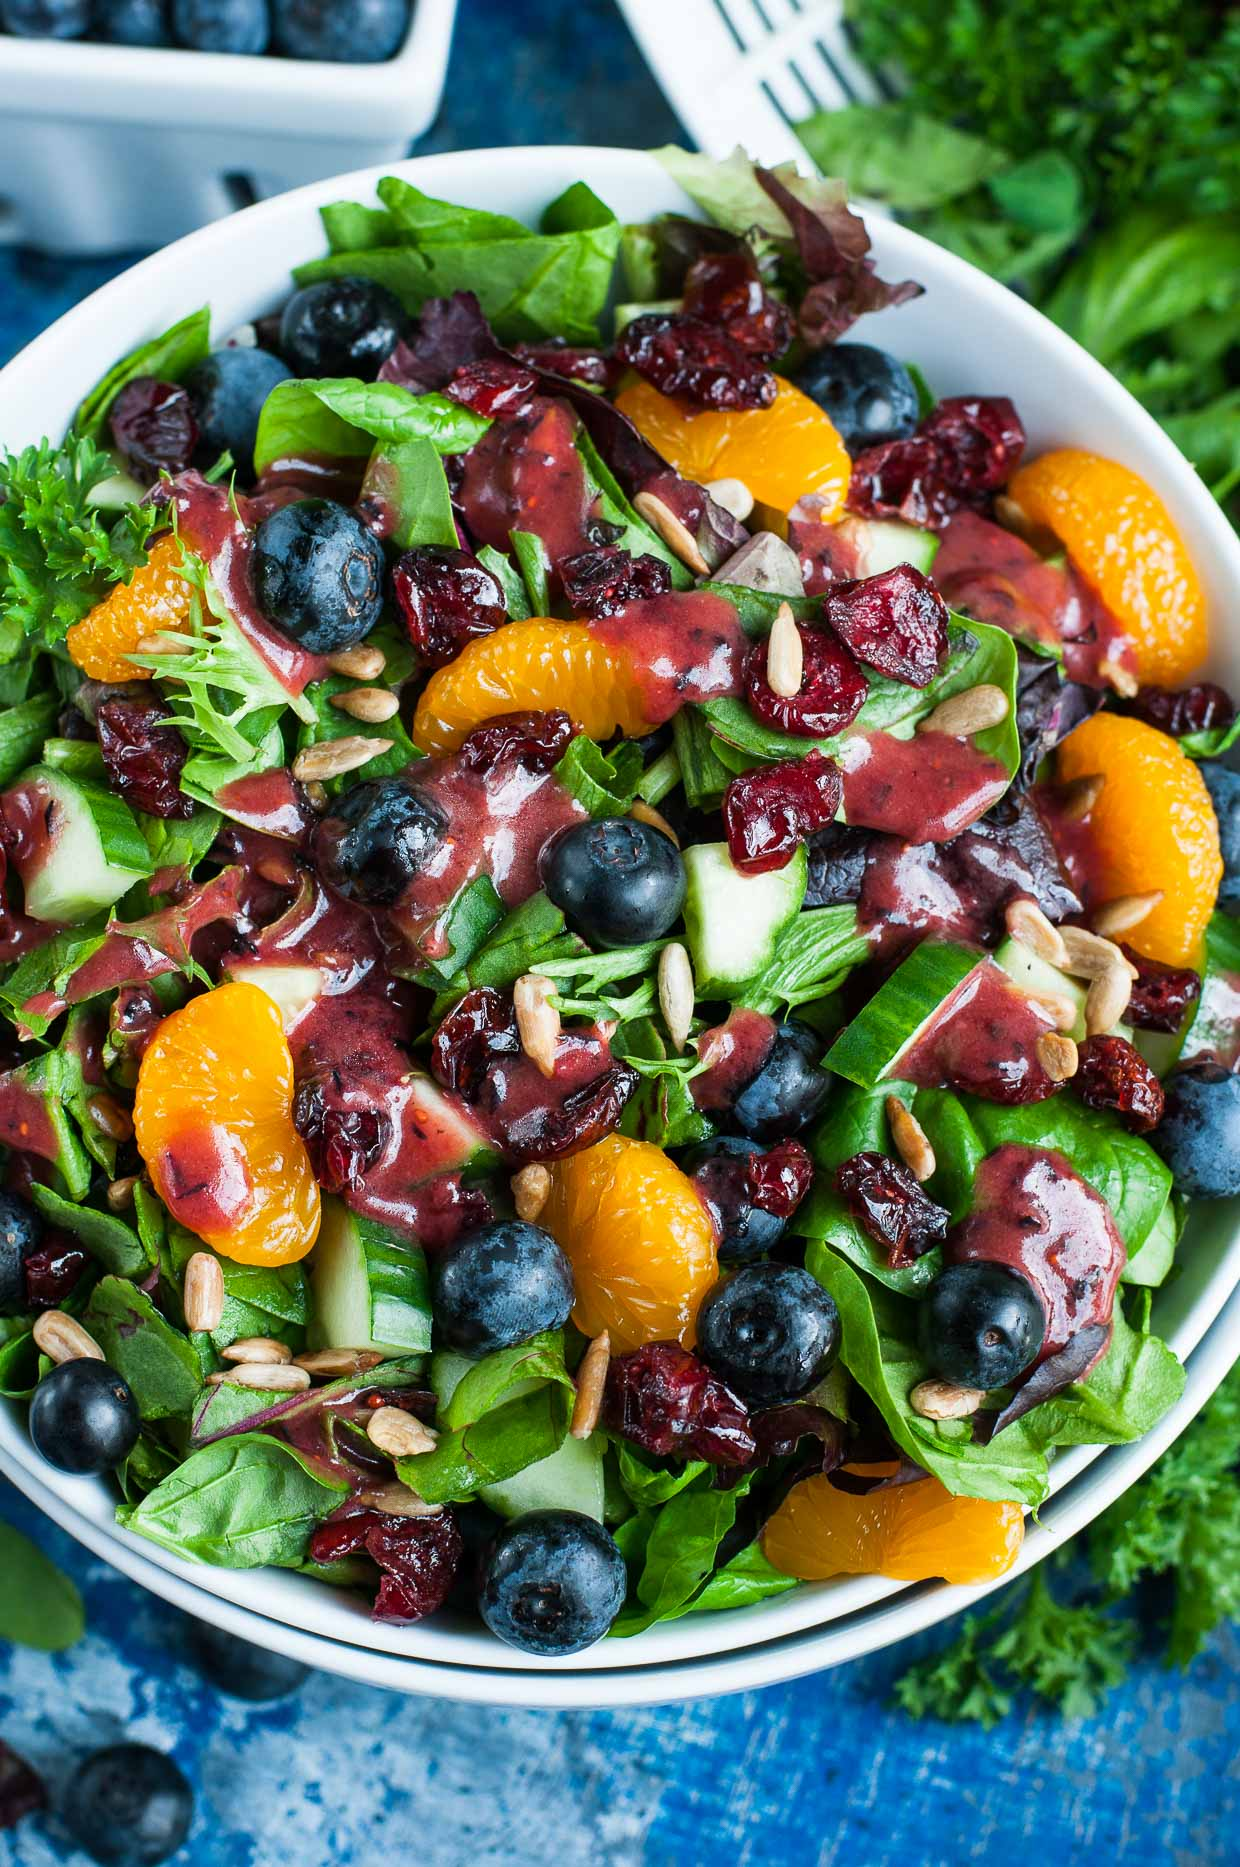 Balsamic Blueberry Salad Dressing on Salad